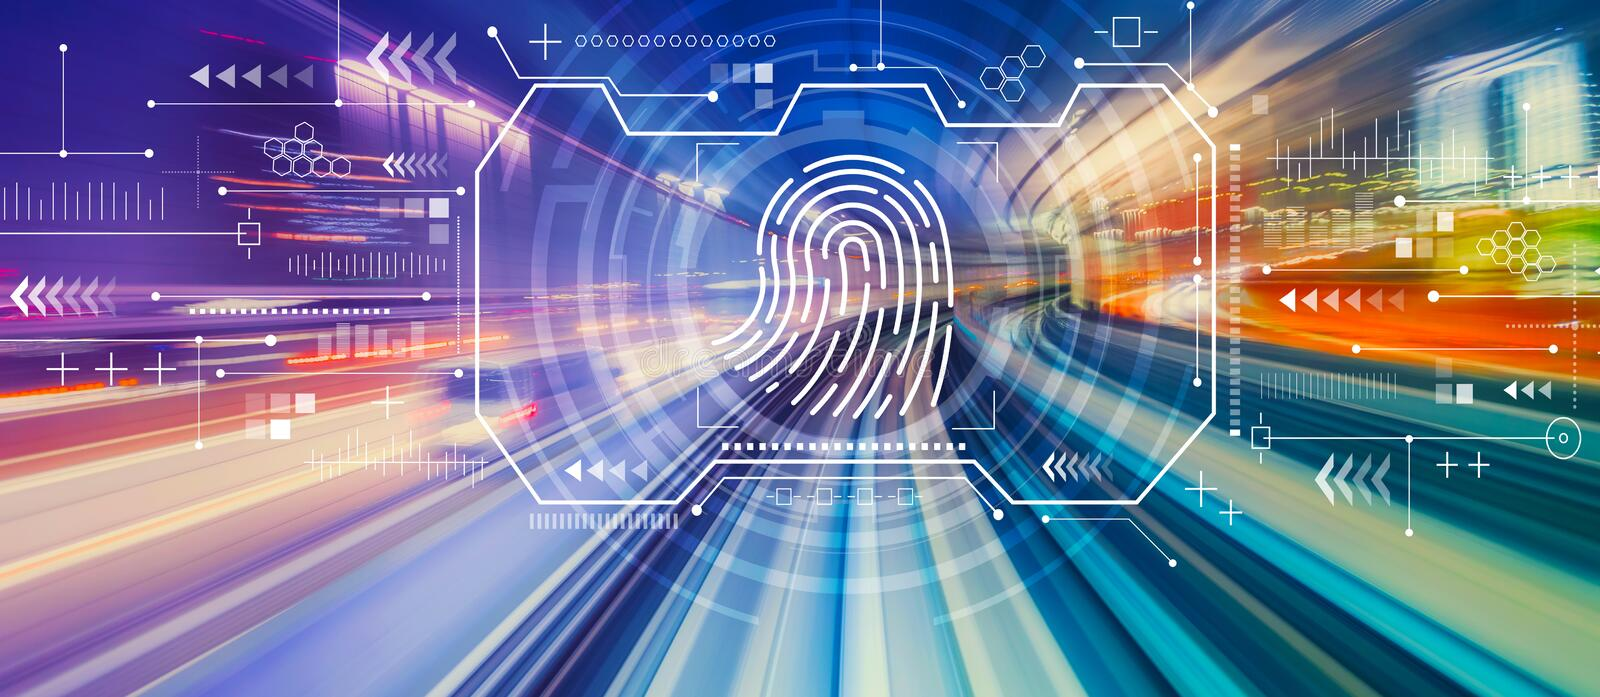 Fingerprint scanning theme with high speed motion blur royalty free stock images